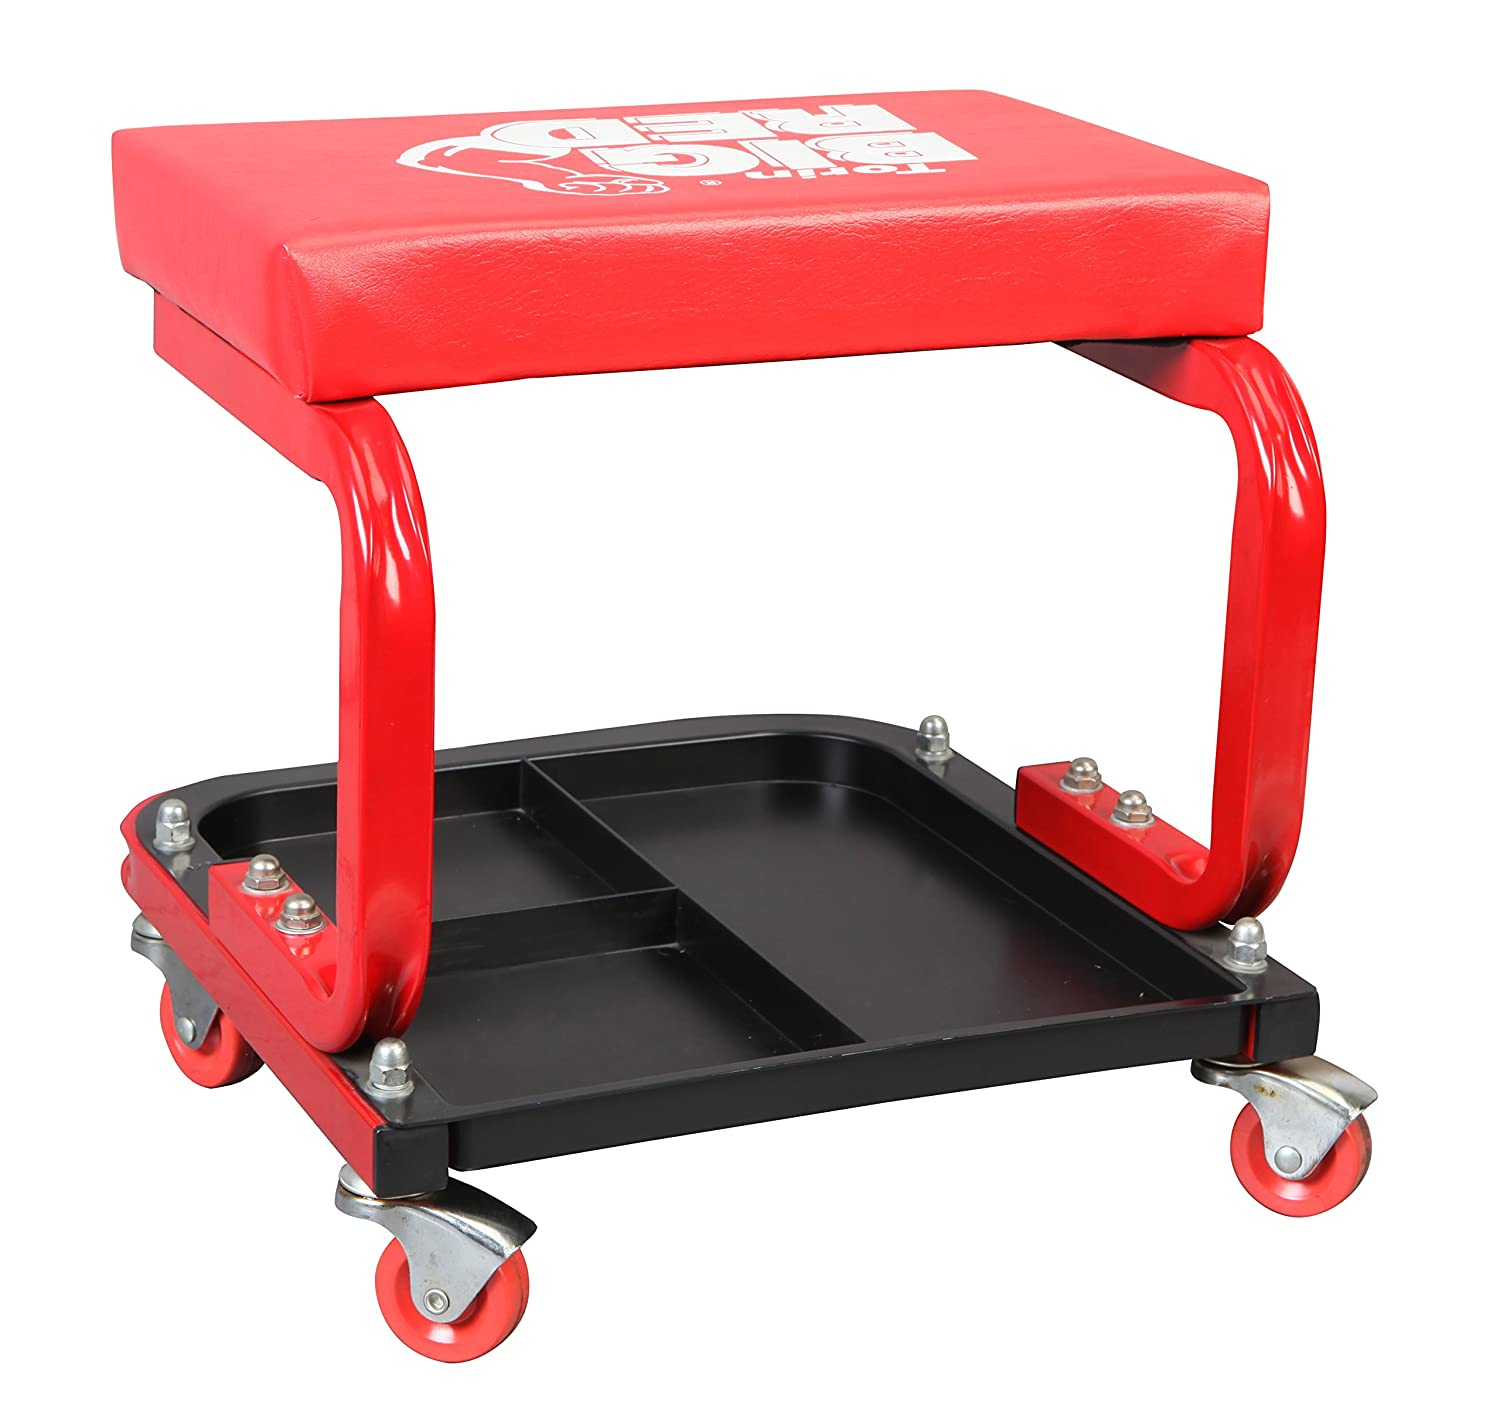 Amazon.com Torin Big Red Rolling Creeper Garage/Shop Seat Padded Mechanic Stool with Tool Tray Red Automotive  sc 1 st  Amazon.com & Amazon.com: Torin Big Red Rolling Creeper Garage/Shop Seat: Padded ... islam-shia.org